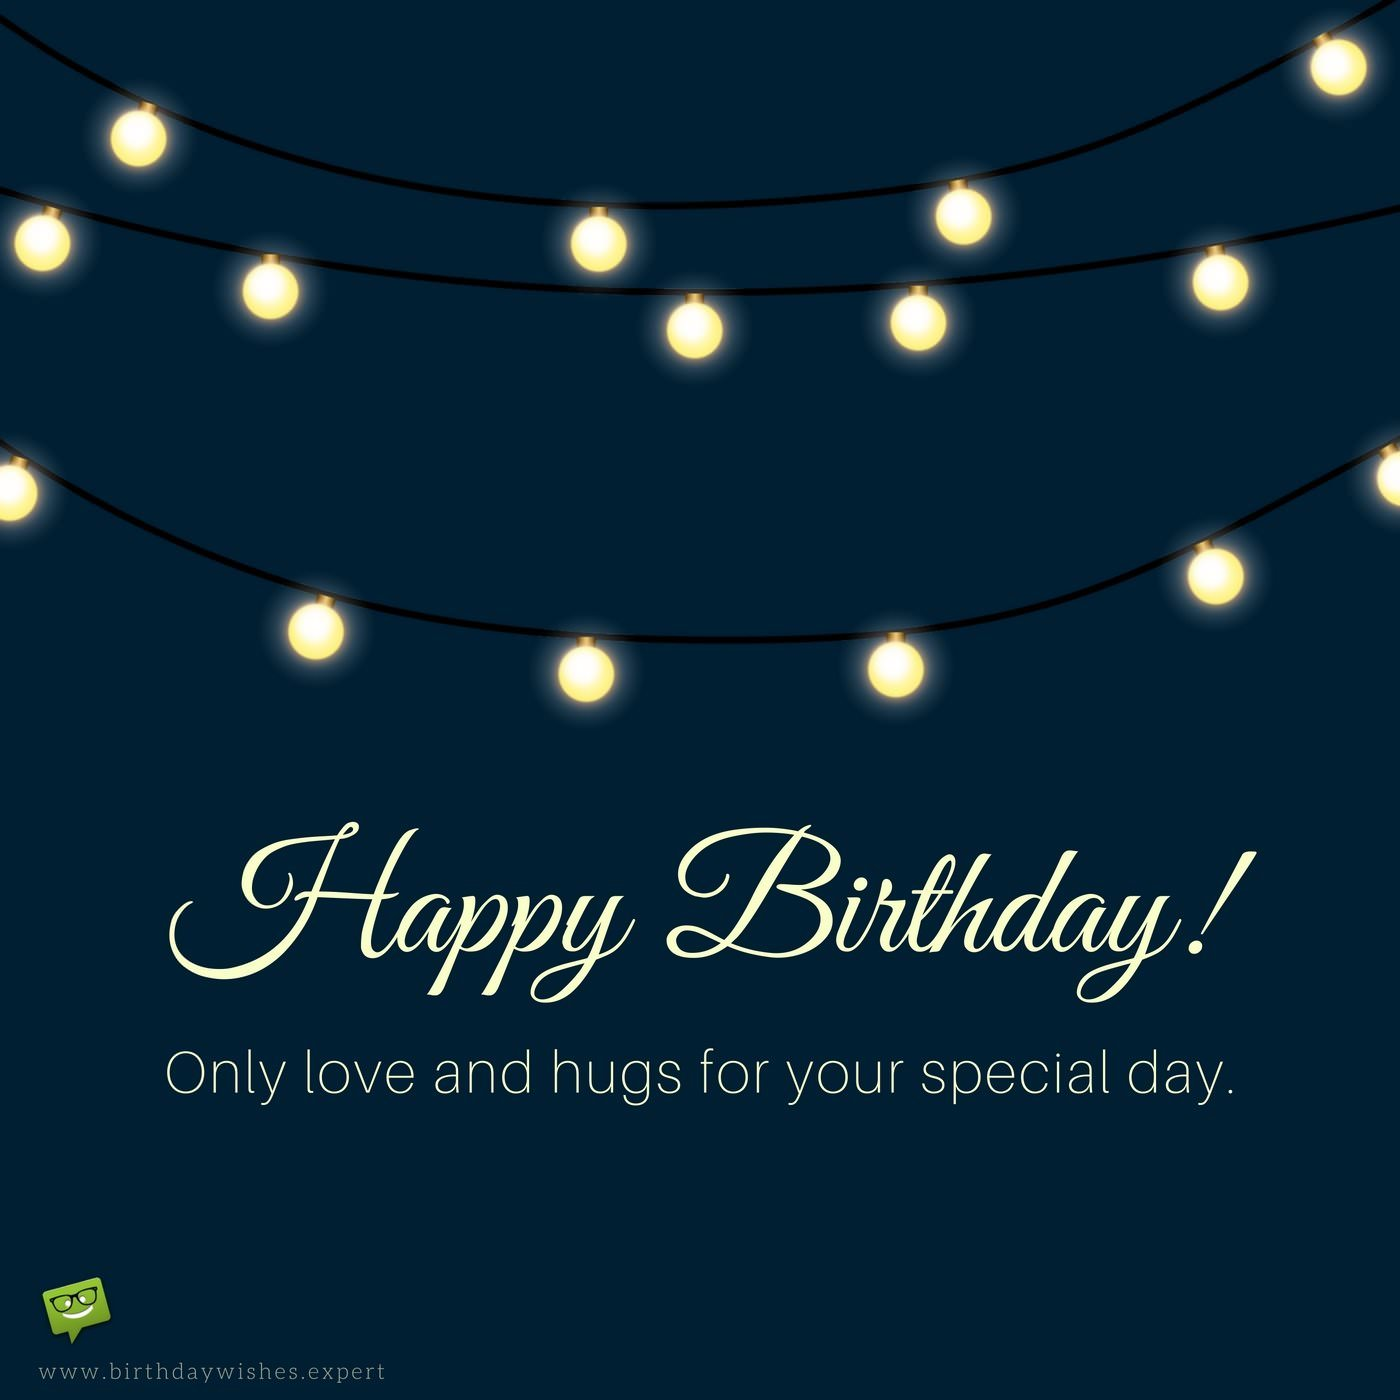 happy birthday only love and hugs for your special day